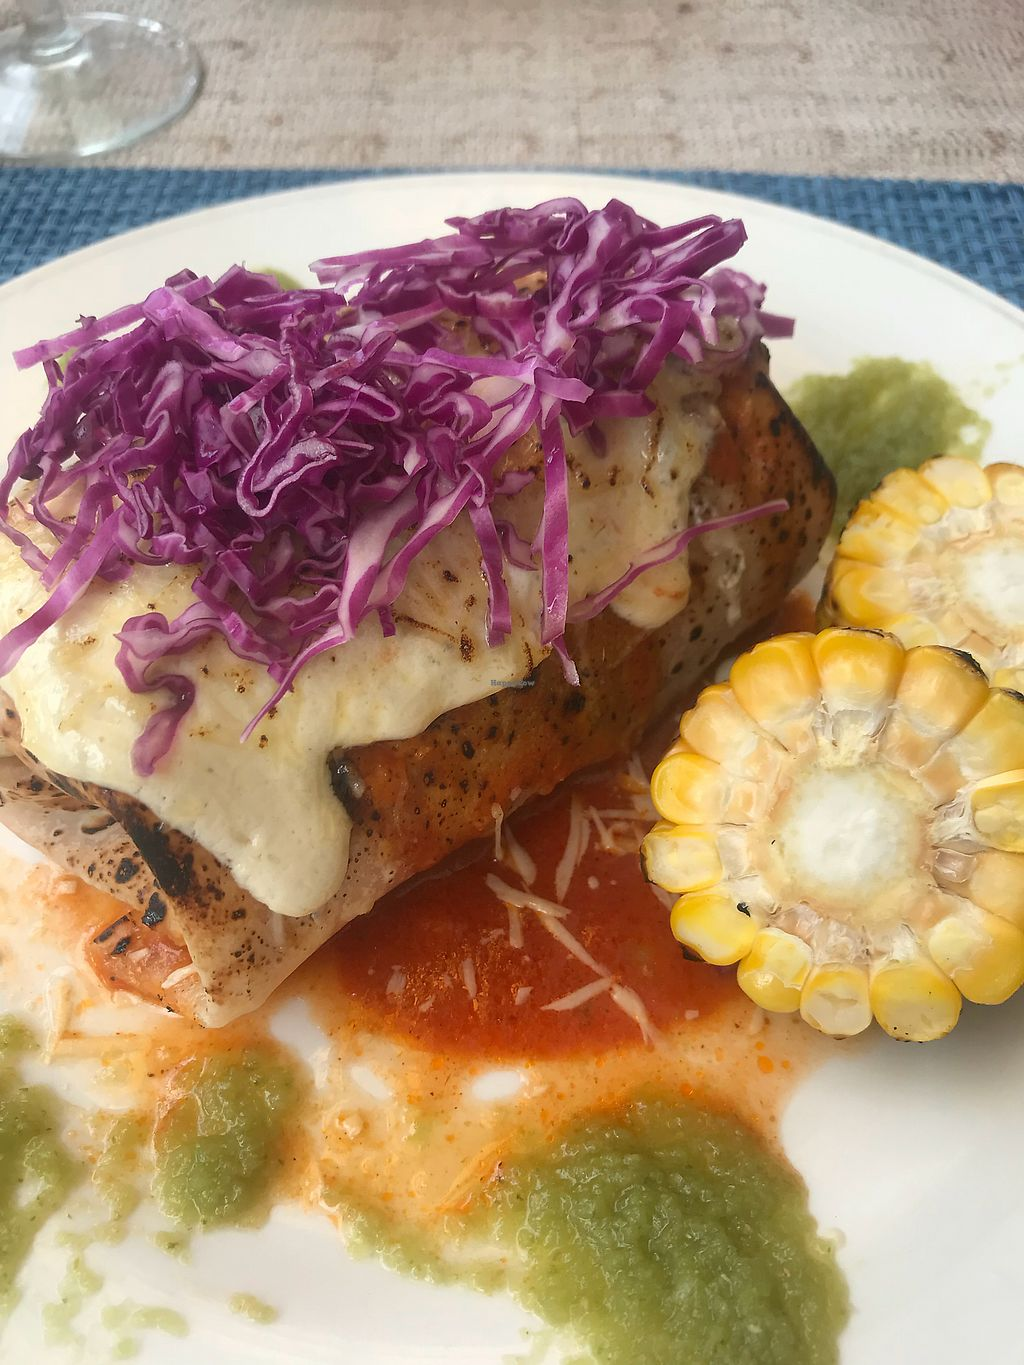 """Photo of Tres Amigos Mexican Cantina  by <a href=""""/members/profile/OliviaFatouros"""">OliviaFatouros</a> <br/>Enchiladas  <br/> March 27, 2018  - <a href='/contact/abuse/image/103736/376644'>Report</a>"""